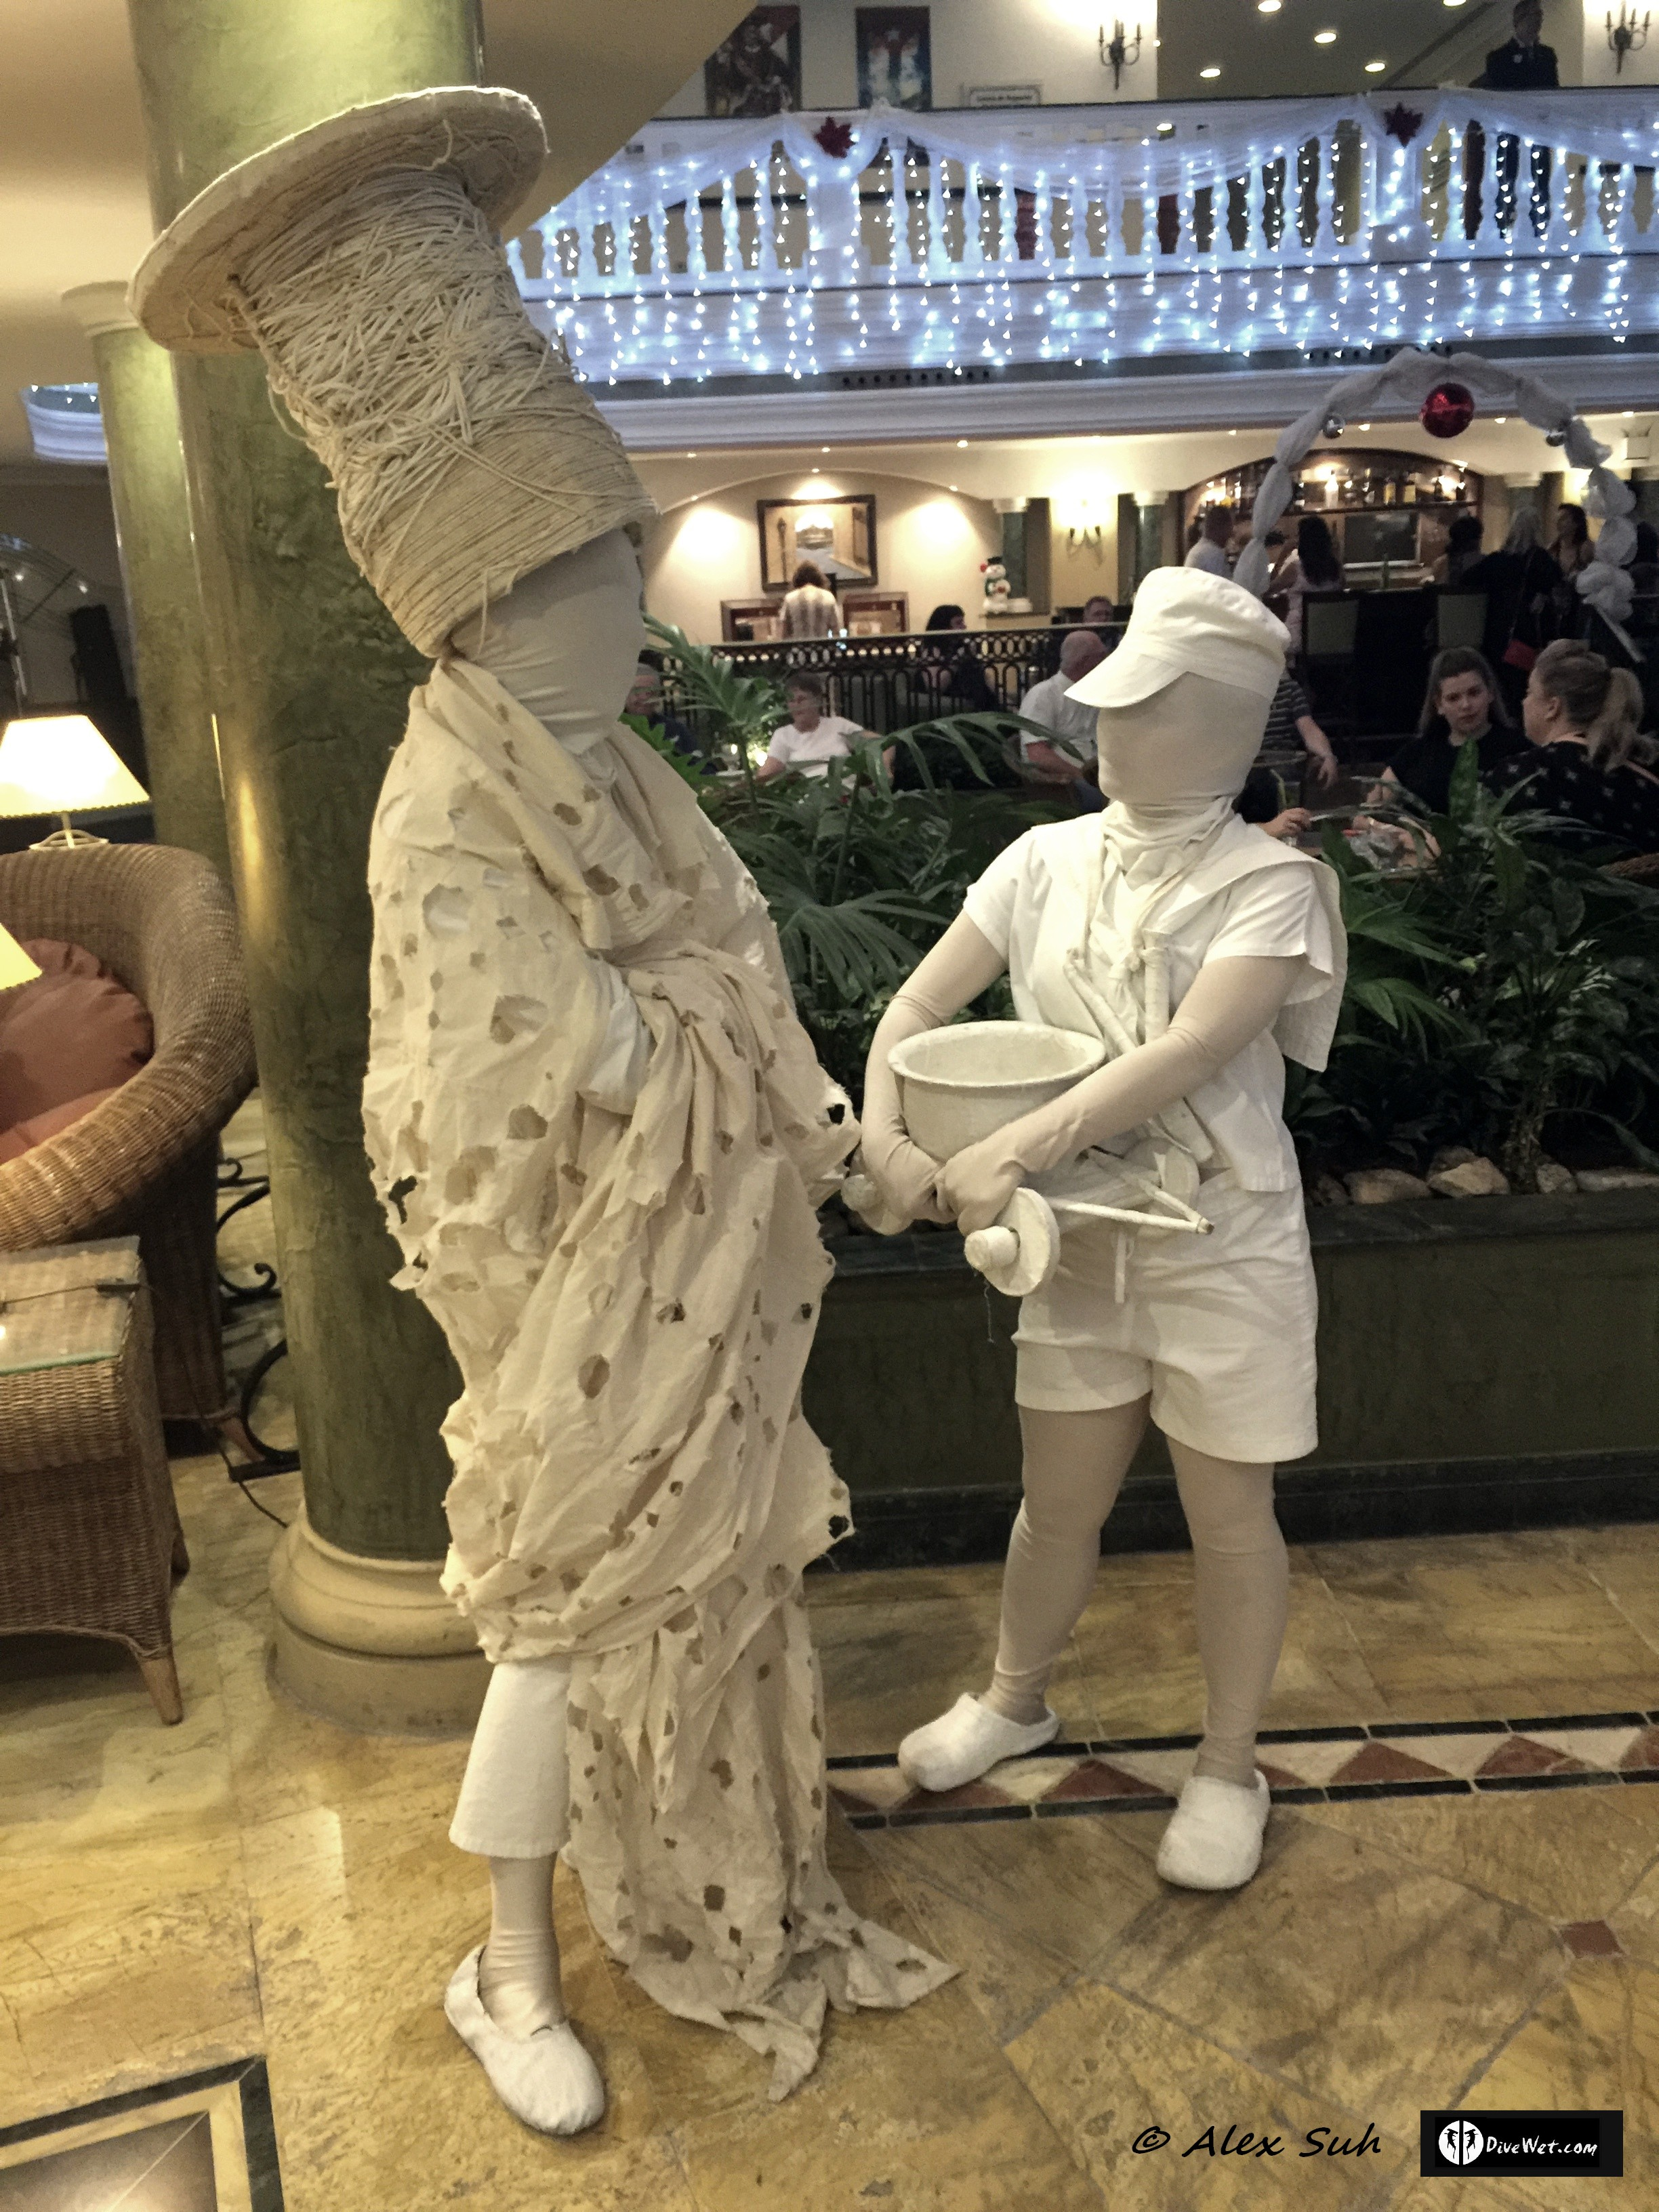 Hotel Parque Central's lobby had these live statues